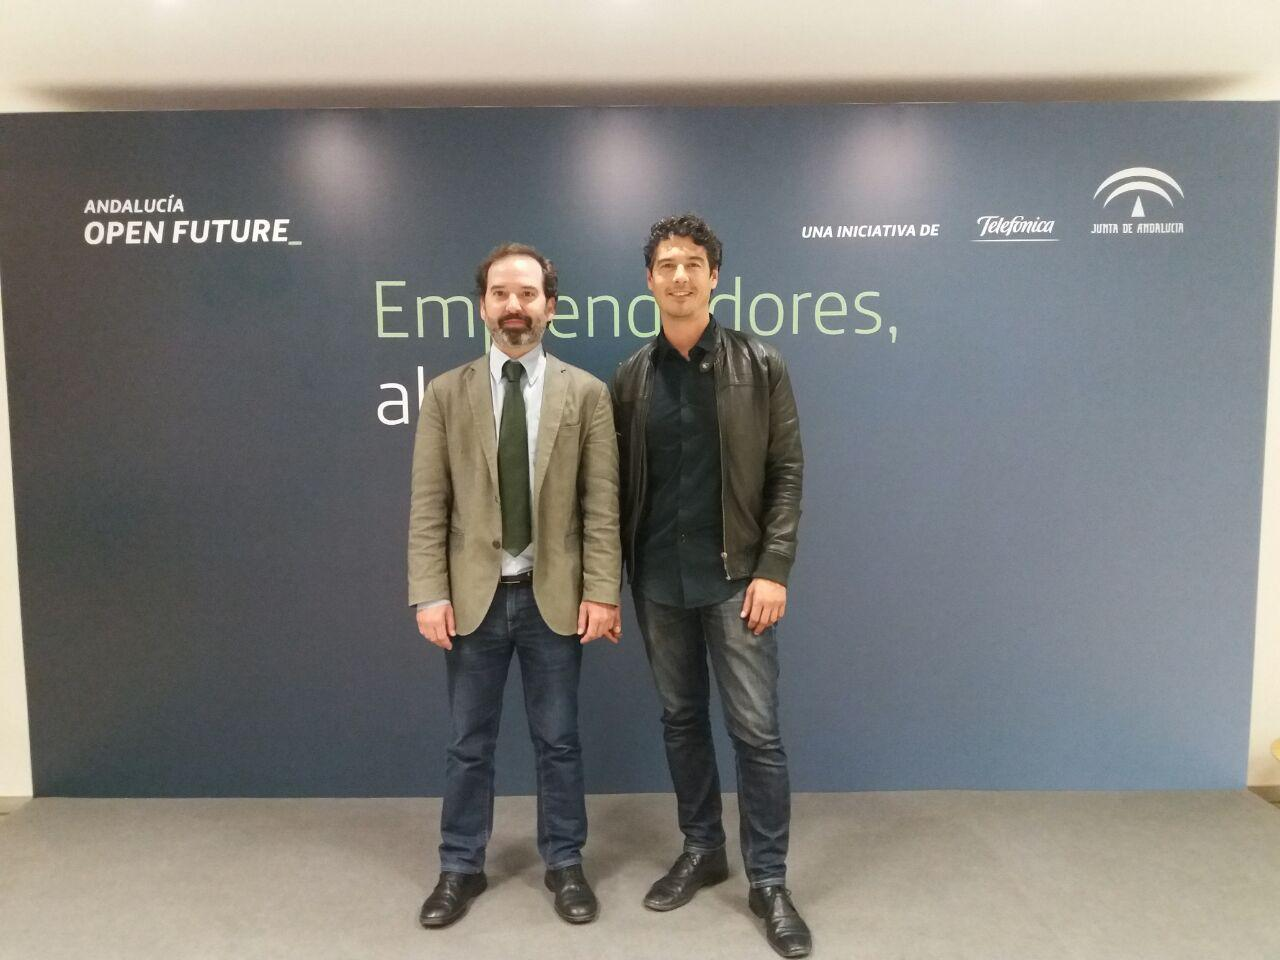 equipo-cyclesmartcity-andalucia-open-future-3